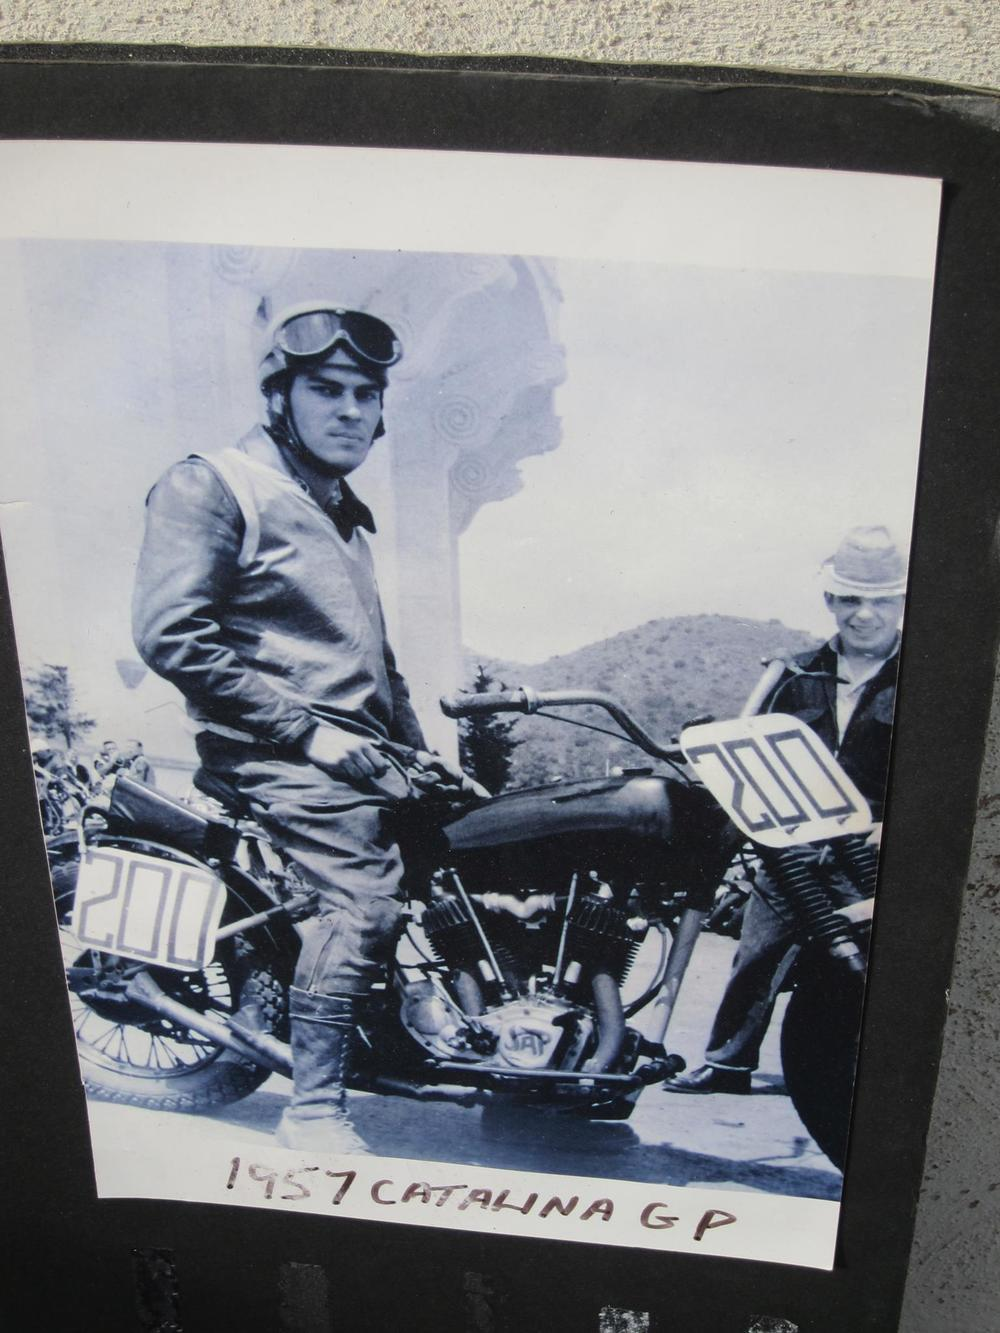 Homer on his 1929 Harley Davidson JD Twin at the 1957 Catalina Grand Prix.